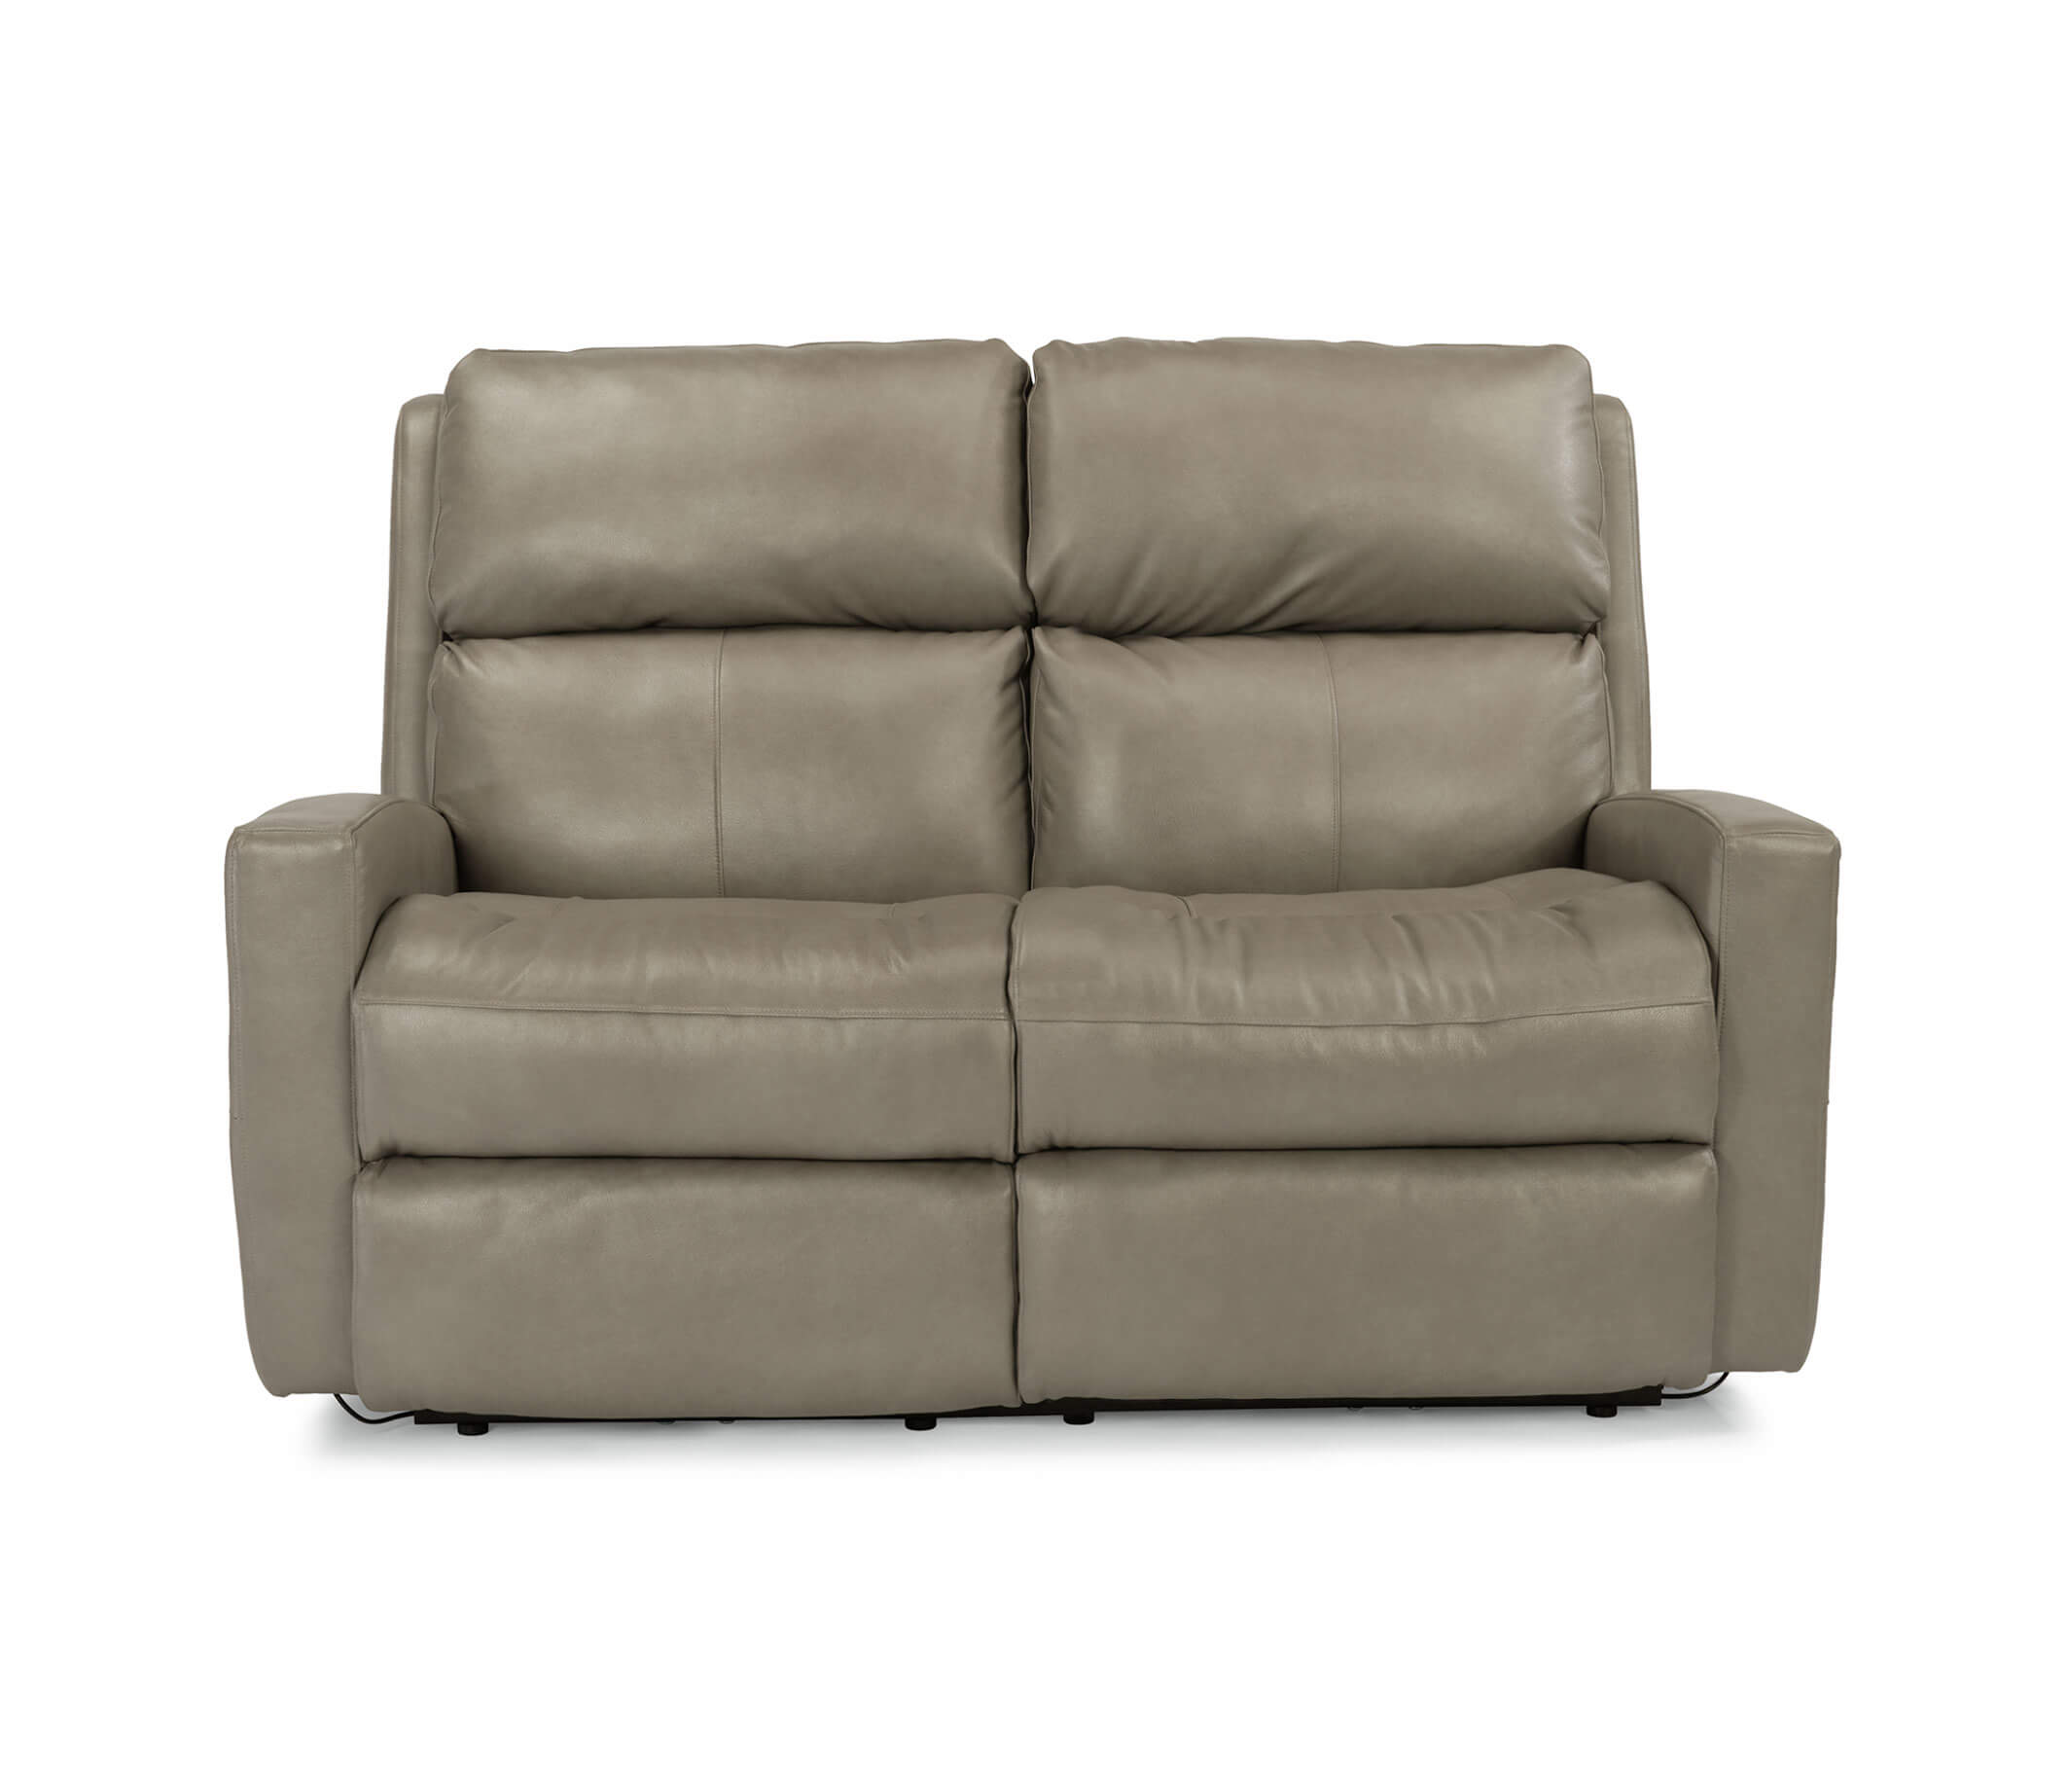 Catalina Leather Sofa Amp Loveseat Bedrooms Amp More Seattle